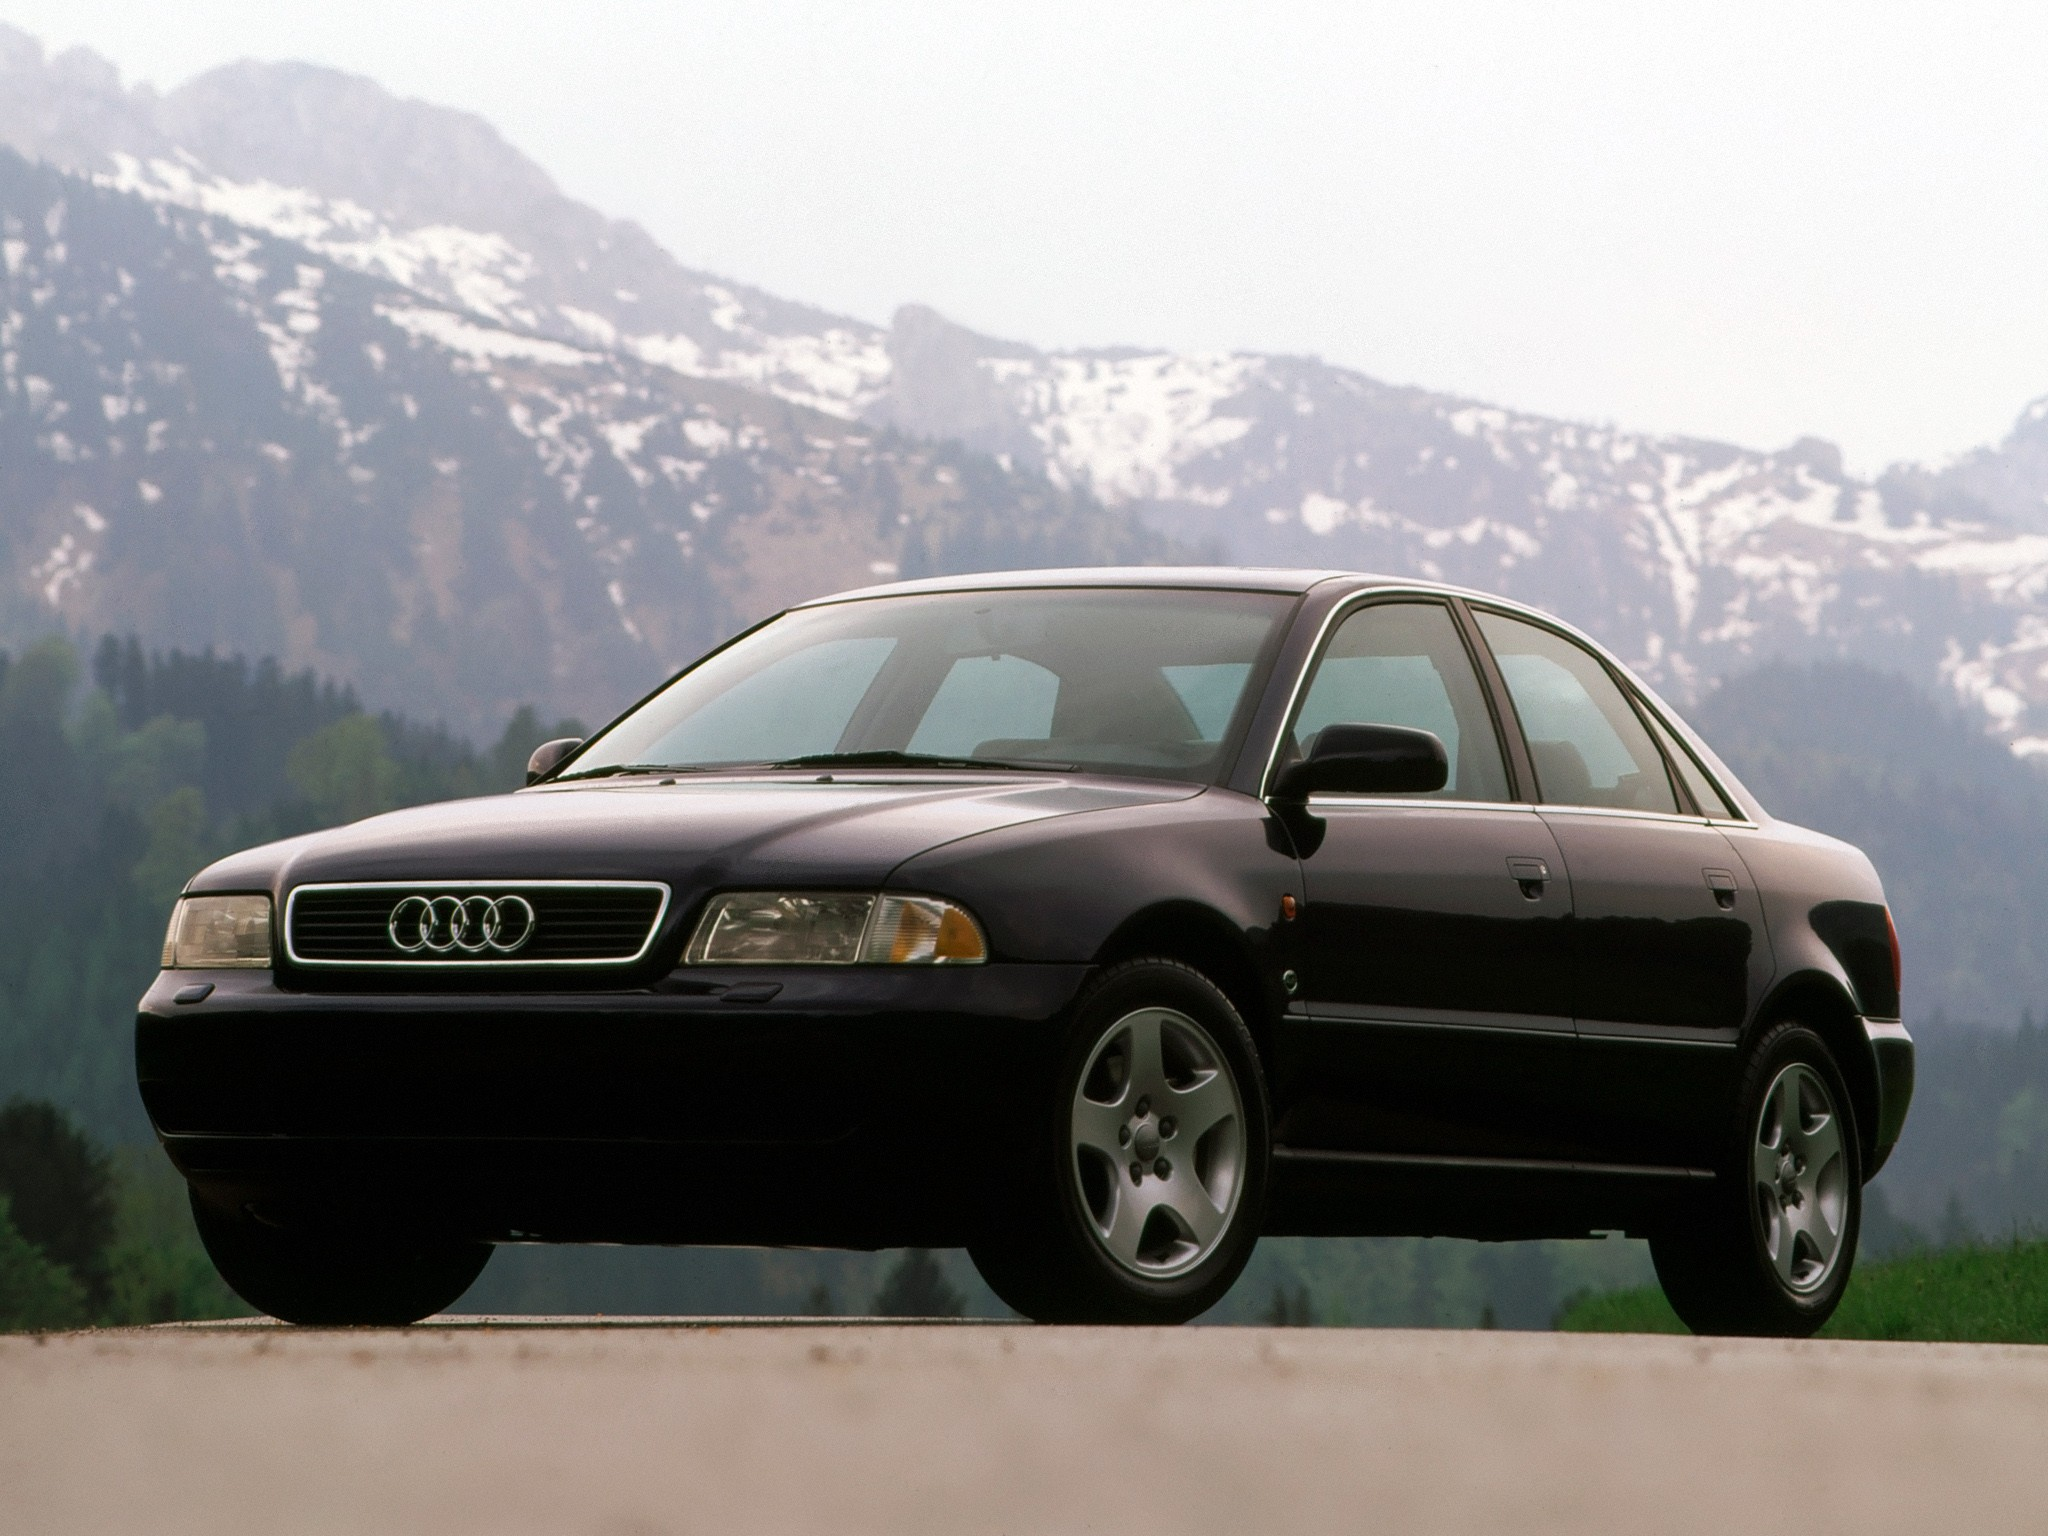 Audi A4 Specs Amp Photos 1994 1995 1996 1997 1998